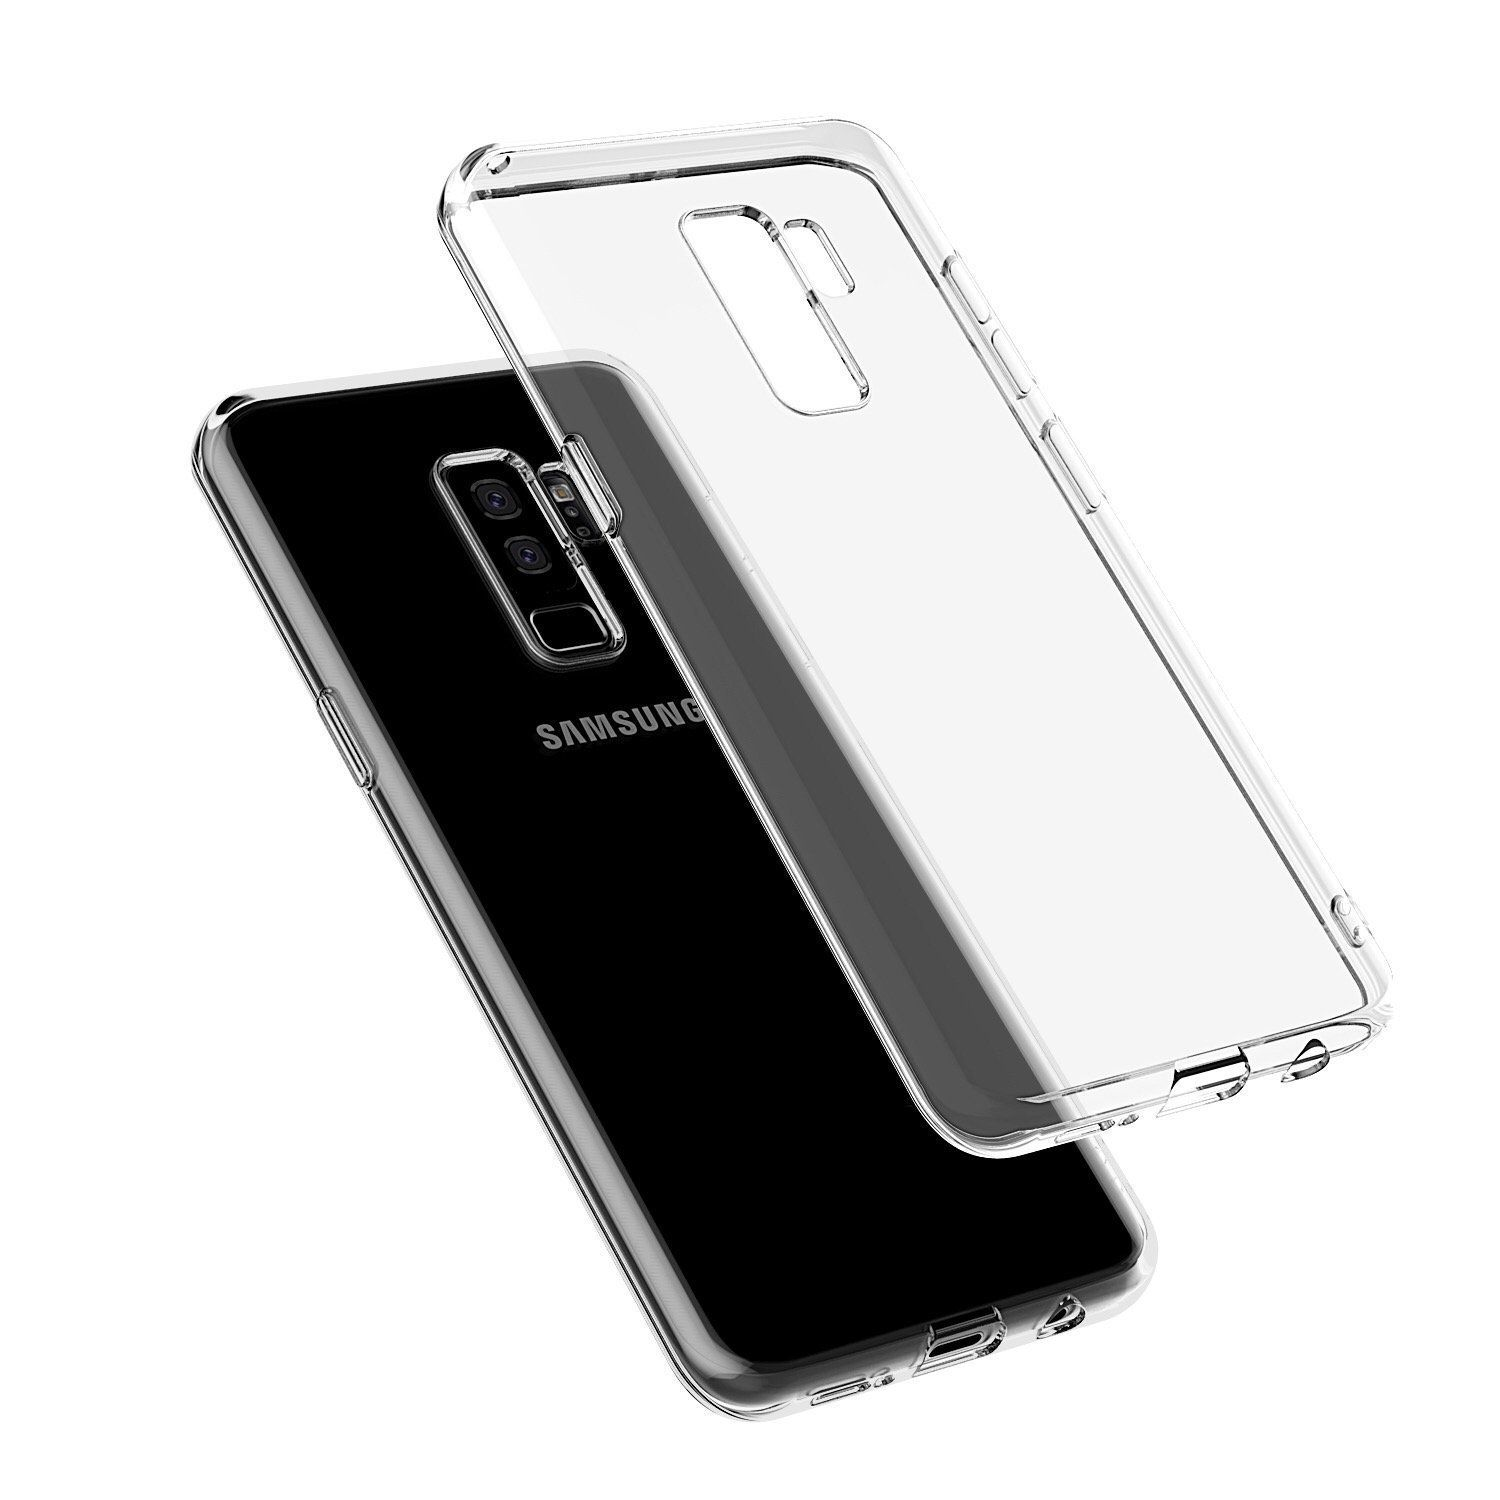 Samsung Galaxy J8 2018 Soft Silicon Cases SpectraDeal Transparent